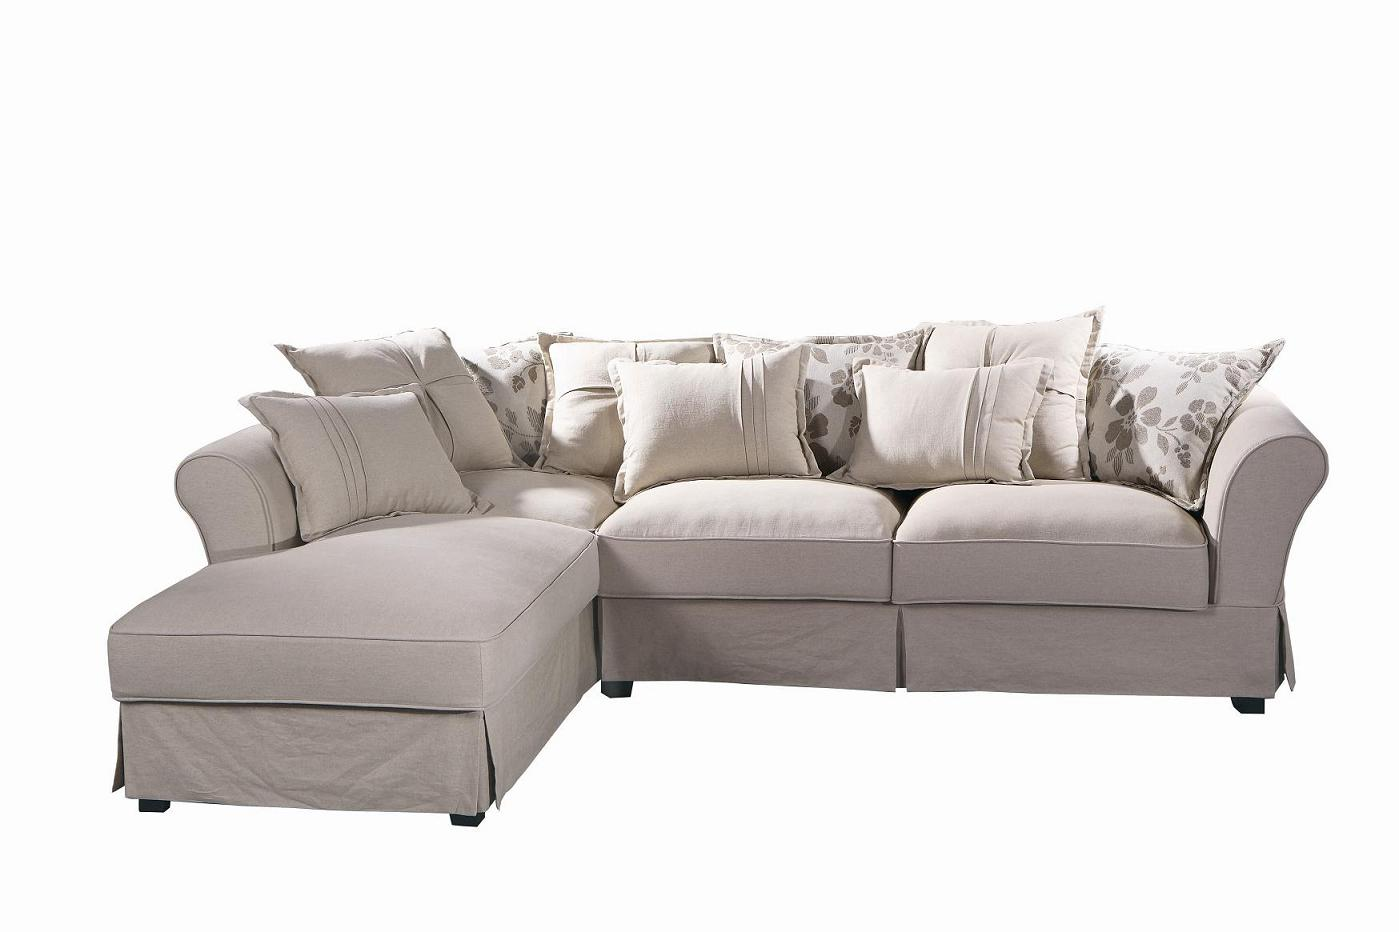 Discount Furniture Couches